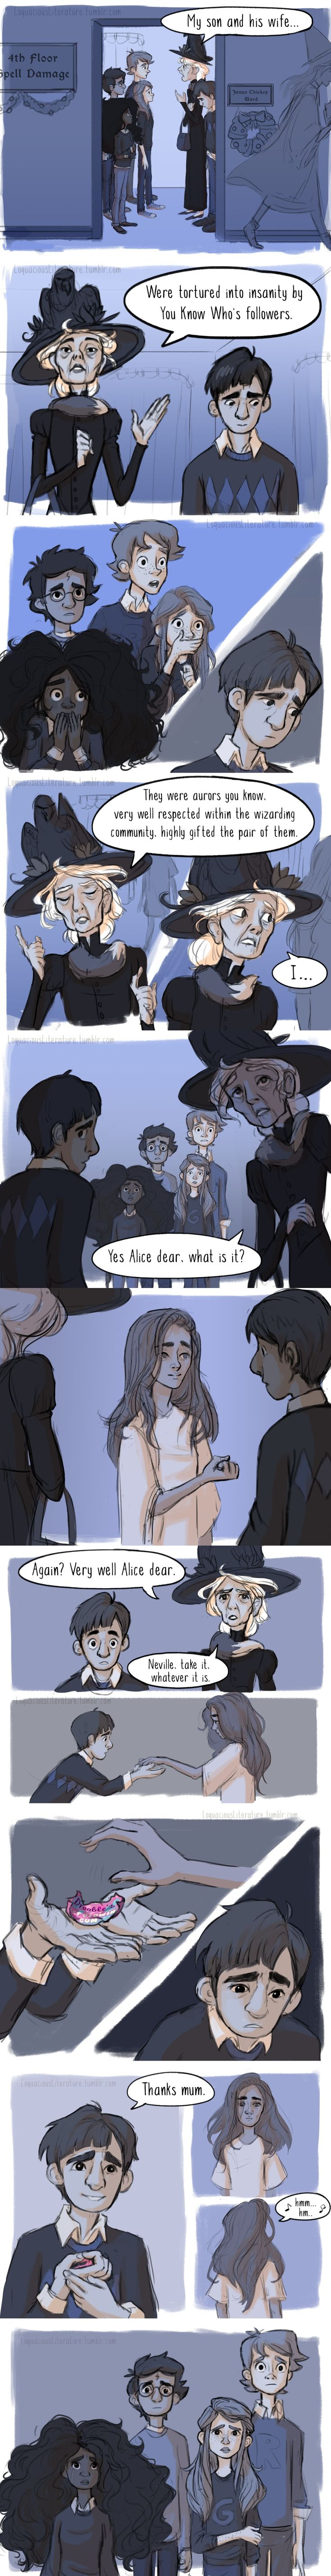 Scene from Order of the Phoenix: This scene should have been in the movies! I also like how Harry and Hermione are portrayed as people of color!